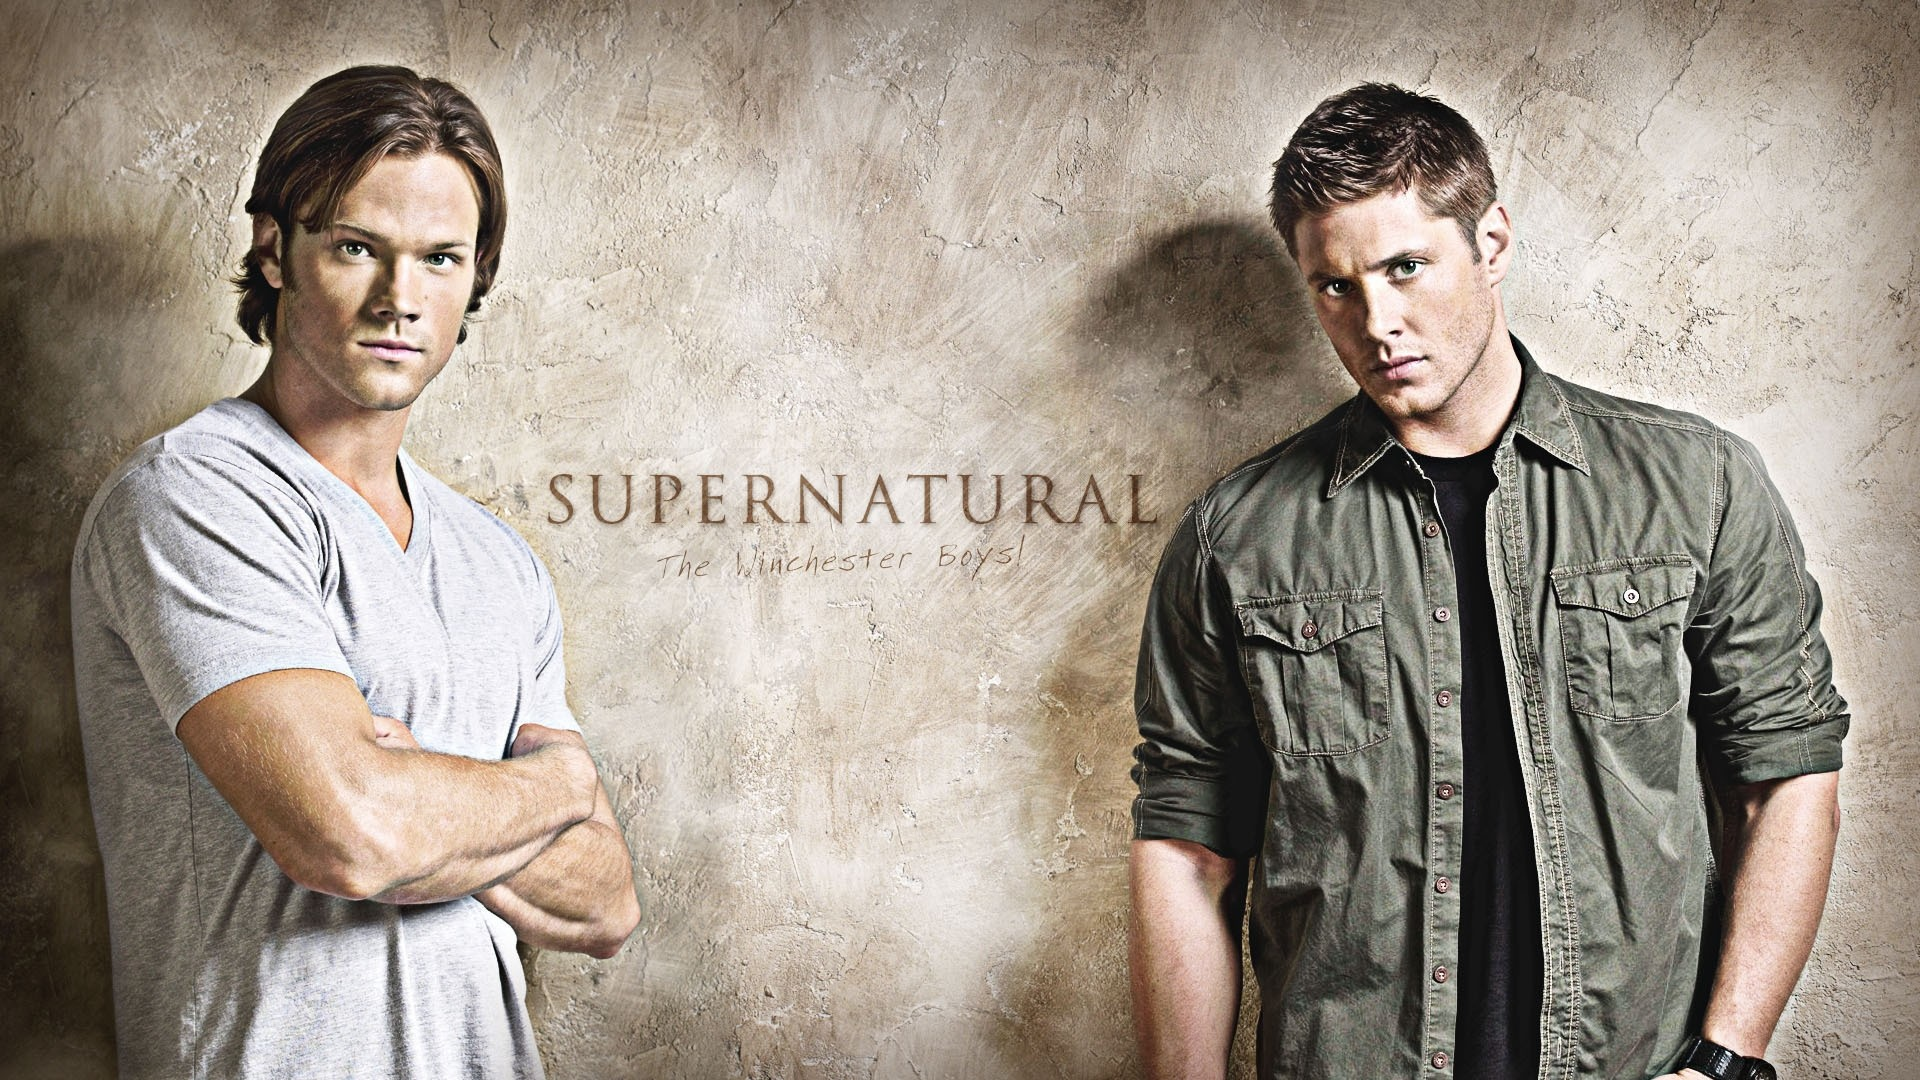 1920x1080 Wallpaper Supernatural, Actors, Jared padalecki, Jensen ackles, Sam  winchester, Dean winchester